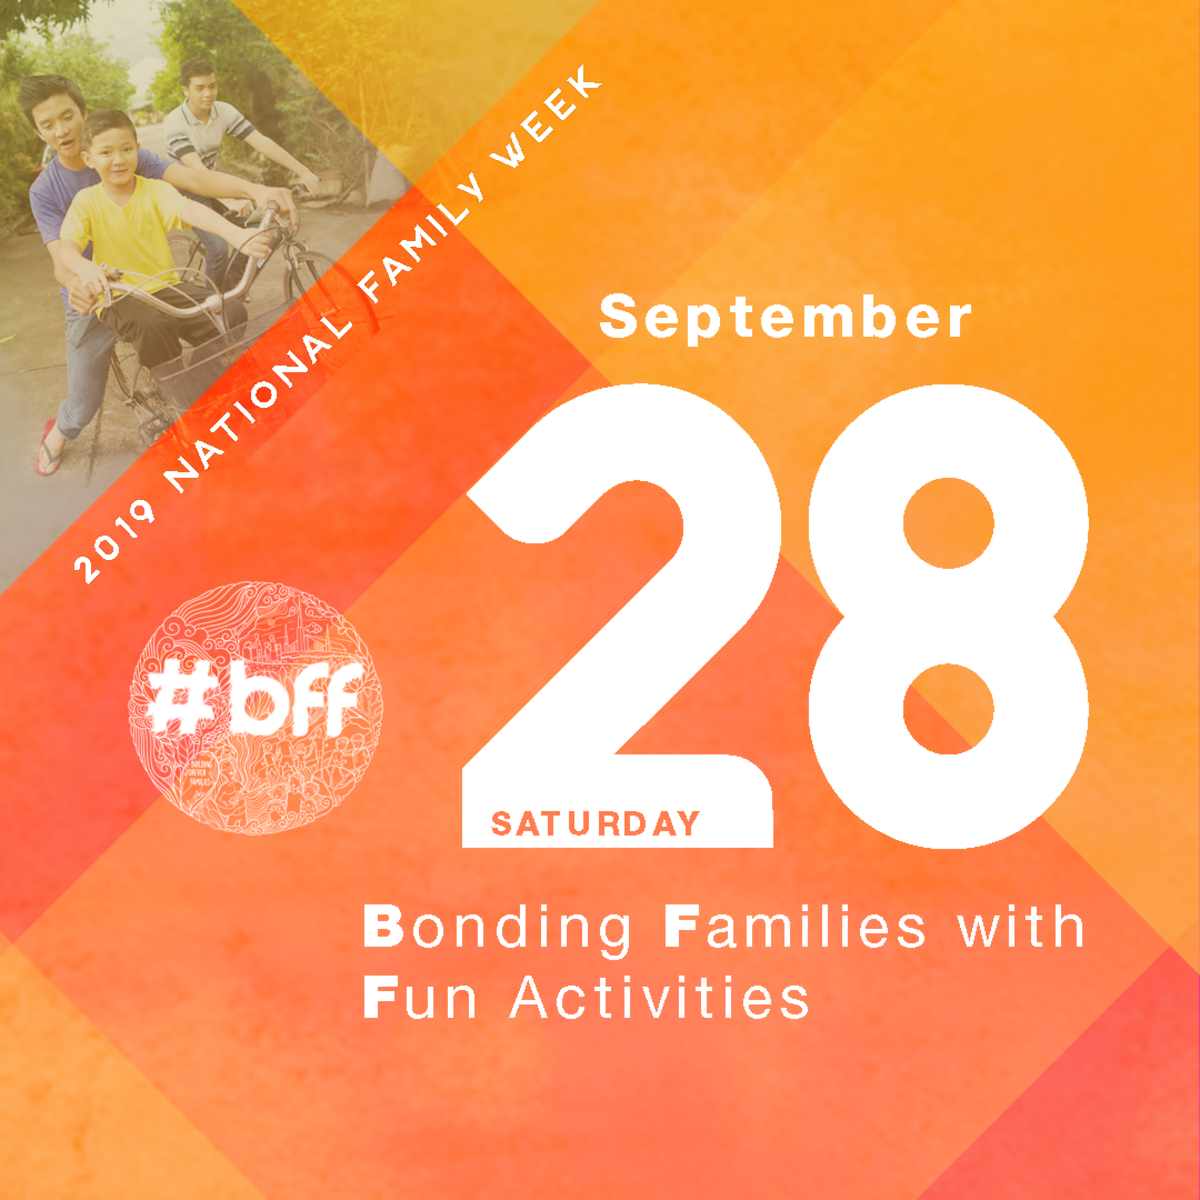 Bonding Families with Fun Activities